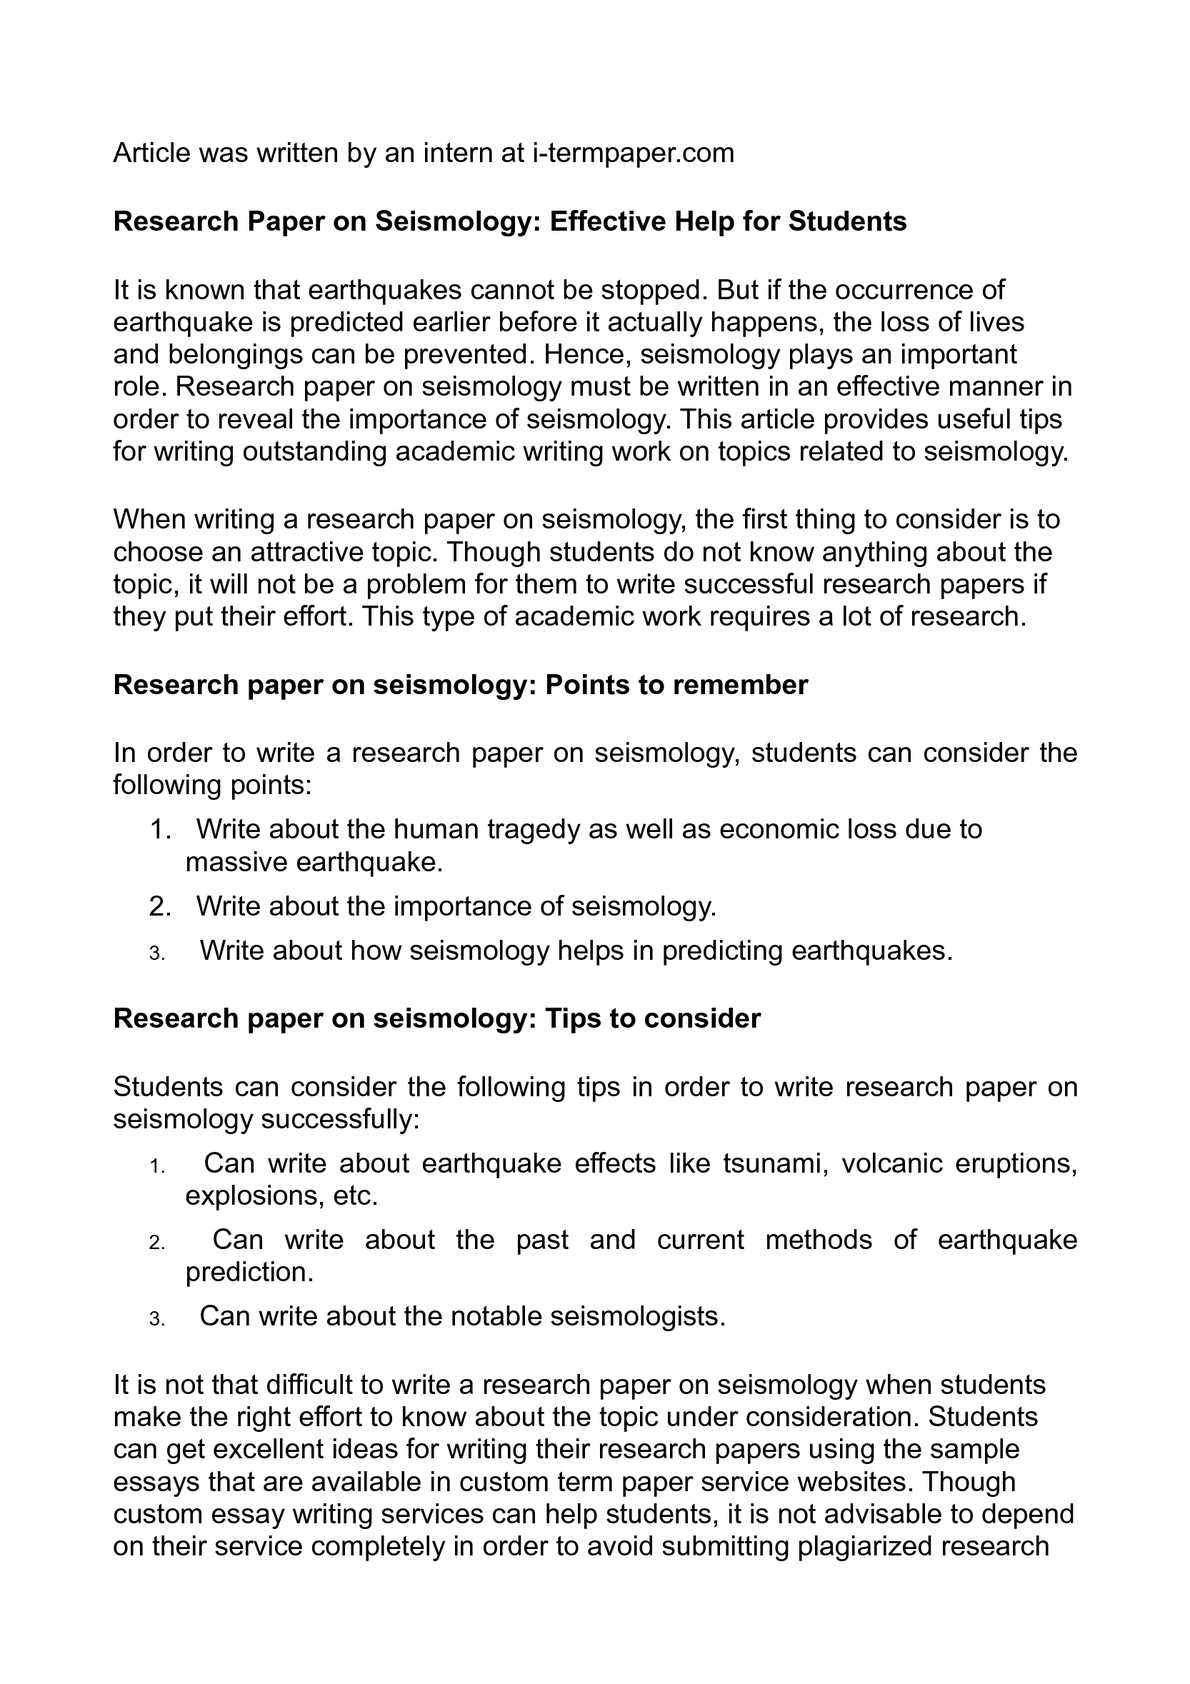 essay earthquake essays kidzera short paragraph on earthquake in  calam eacute o research paper on seismology effective help for students essay from earthquake